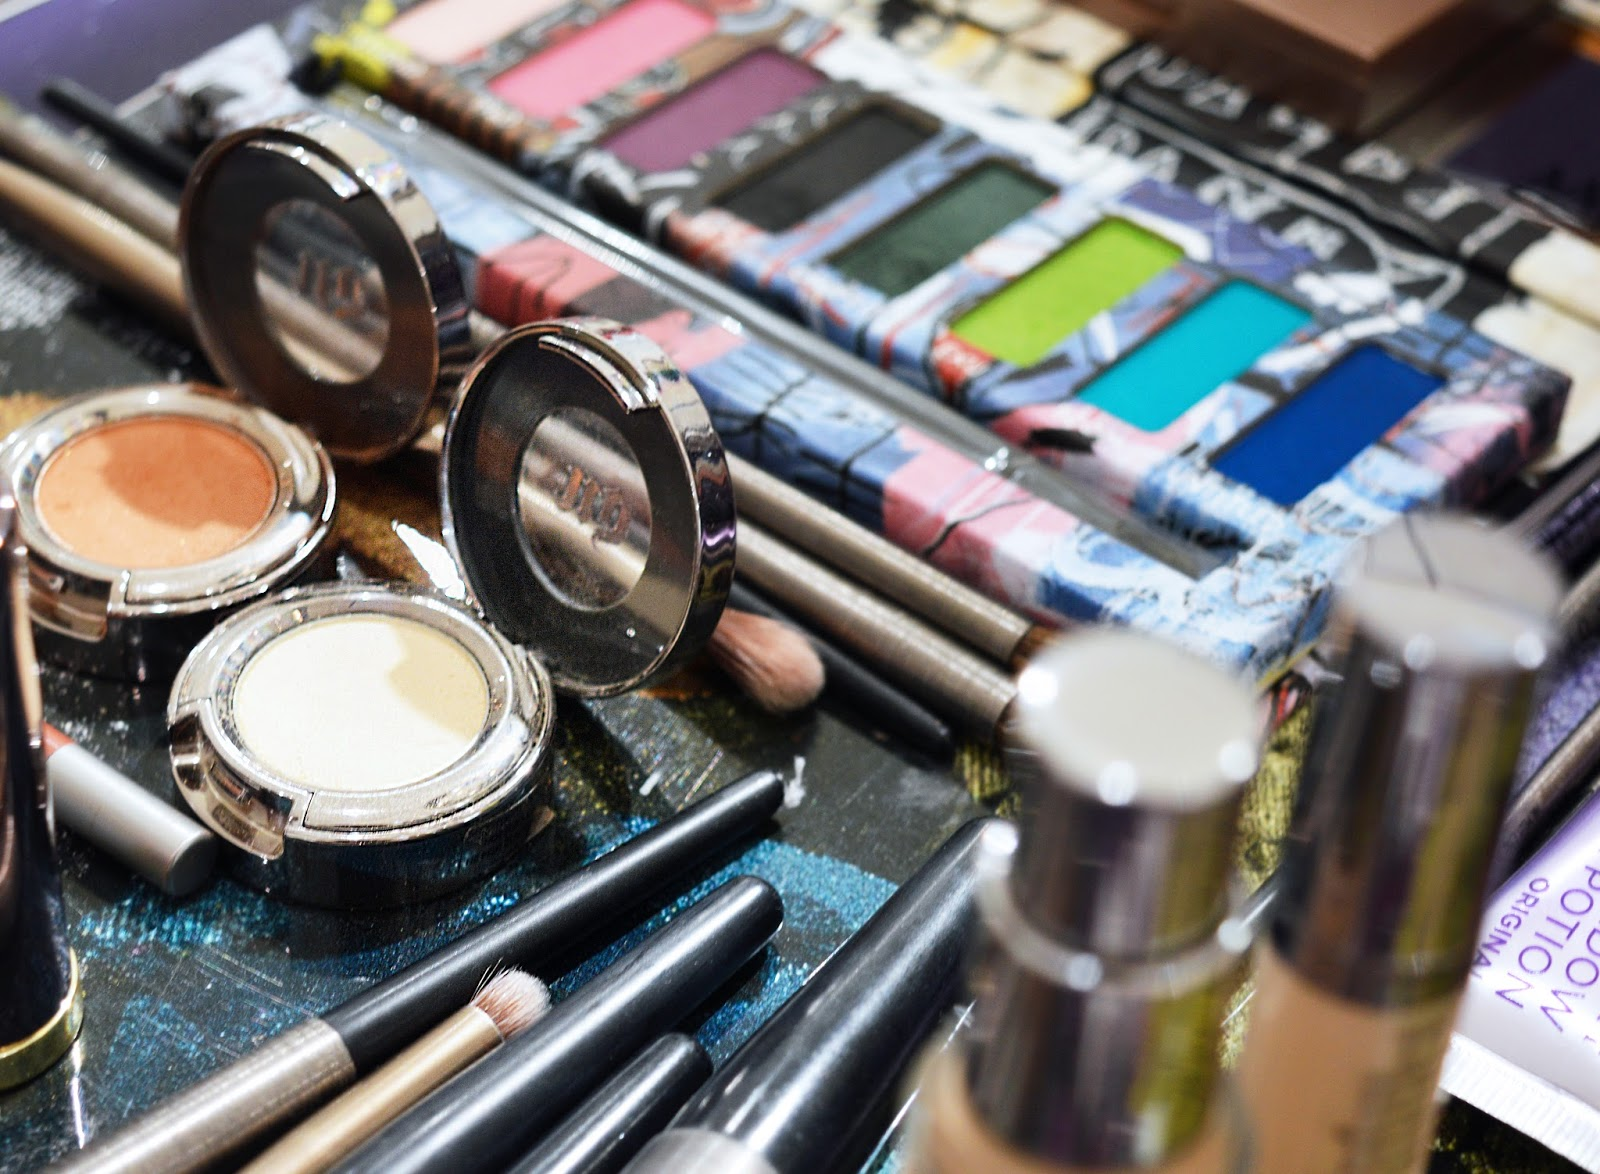 A messy make-up counter, eyeshadows open